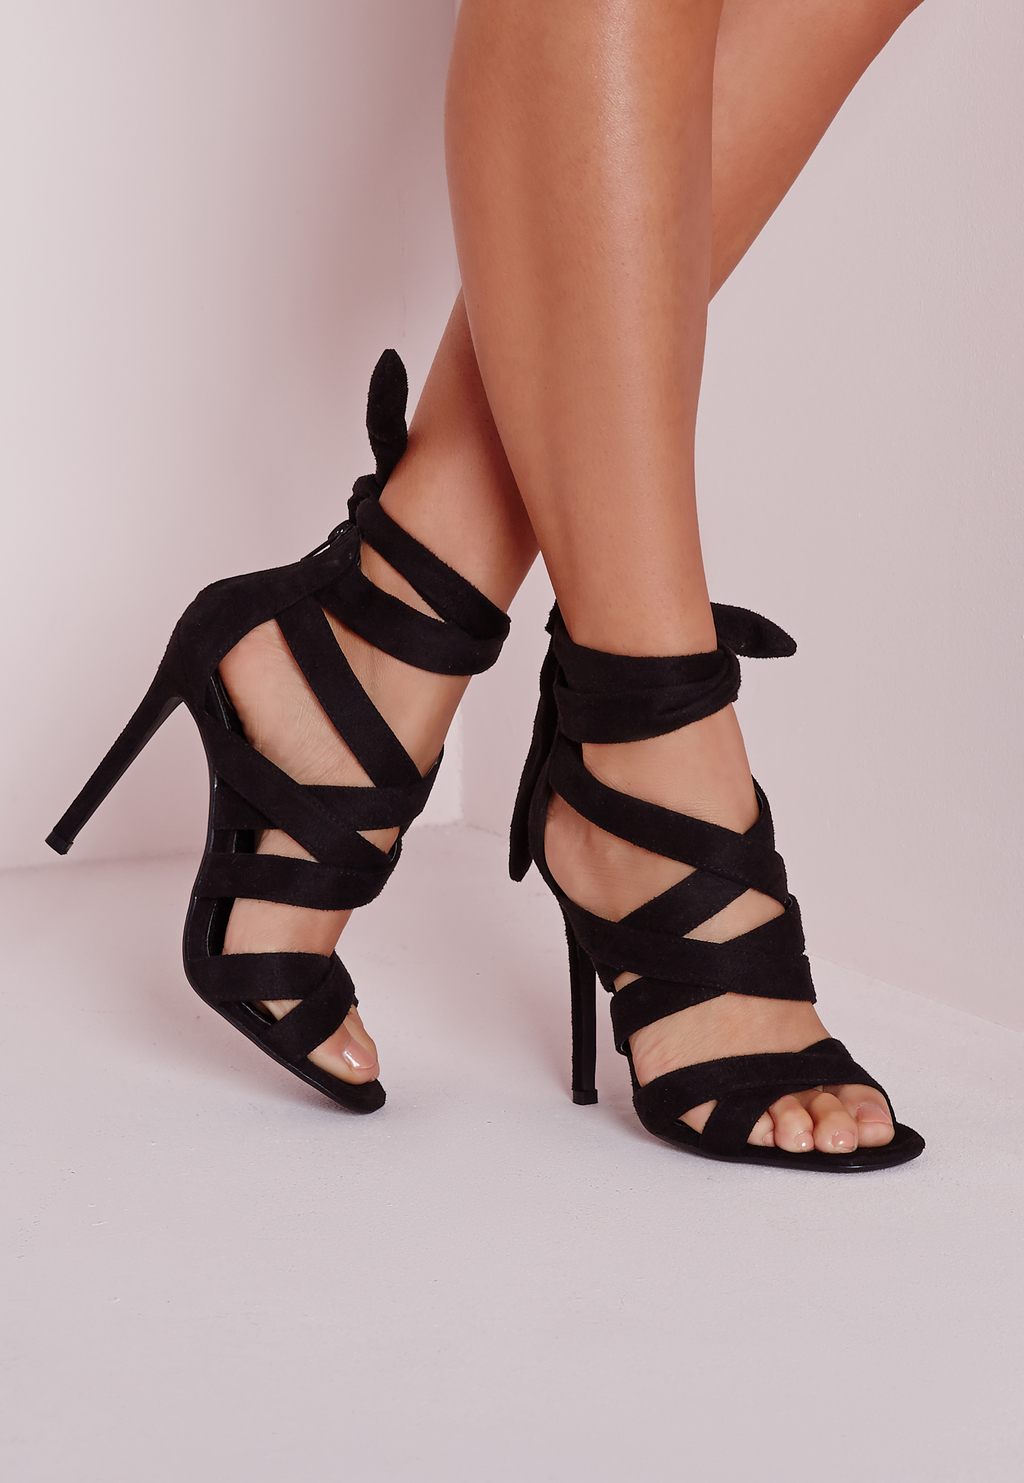 Lace Up Gladiator Heels Black, Black - predominant colour: black; occasions: evening, occasion; material: suede; ankle detail: ankle strap; heel: stiletto; toe: open toe/peeptoe; style: strappy; finish: plain; pattern: plain; heel height: very high; season: s/s 2016; wardrobe: event